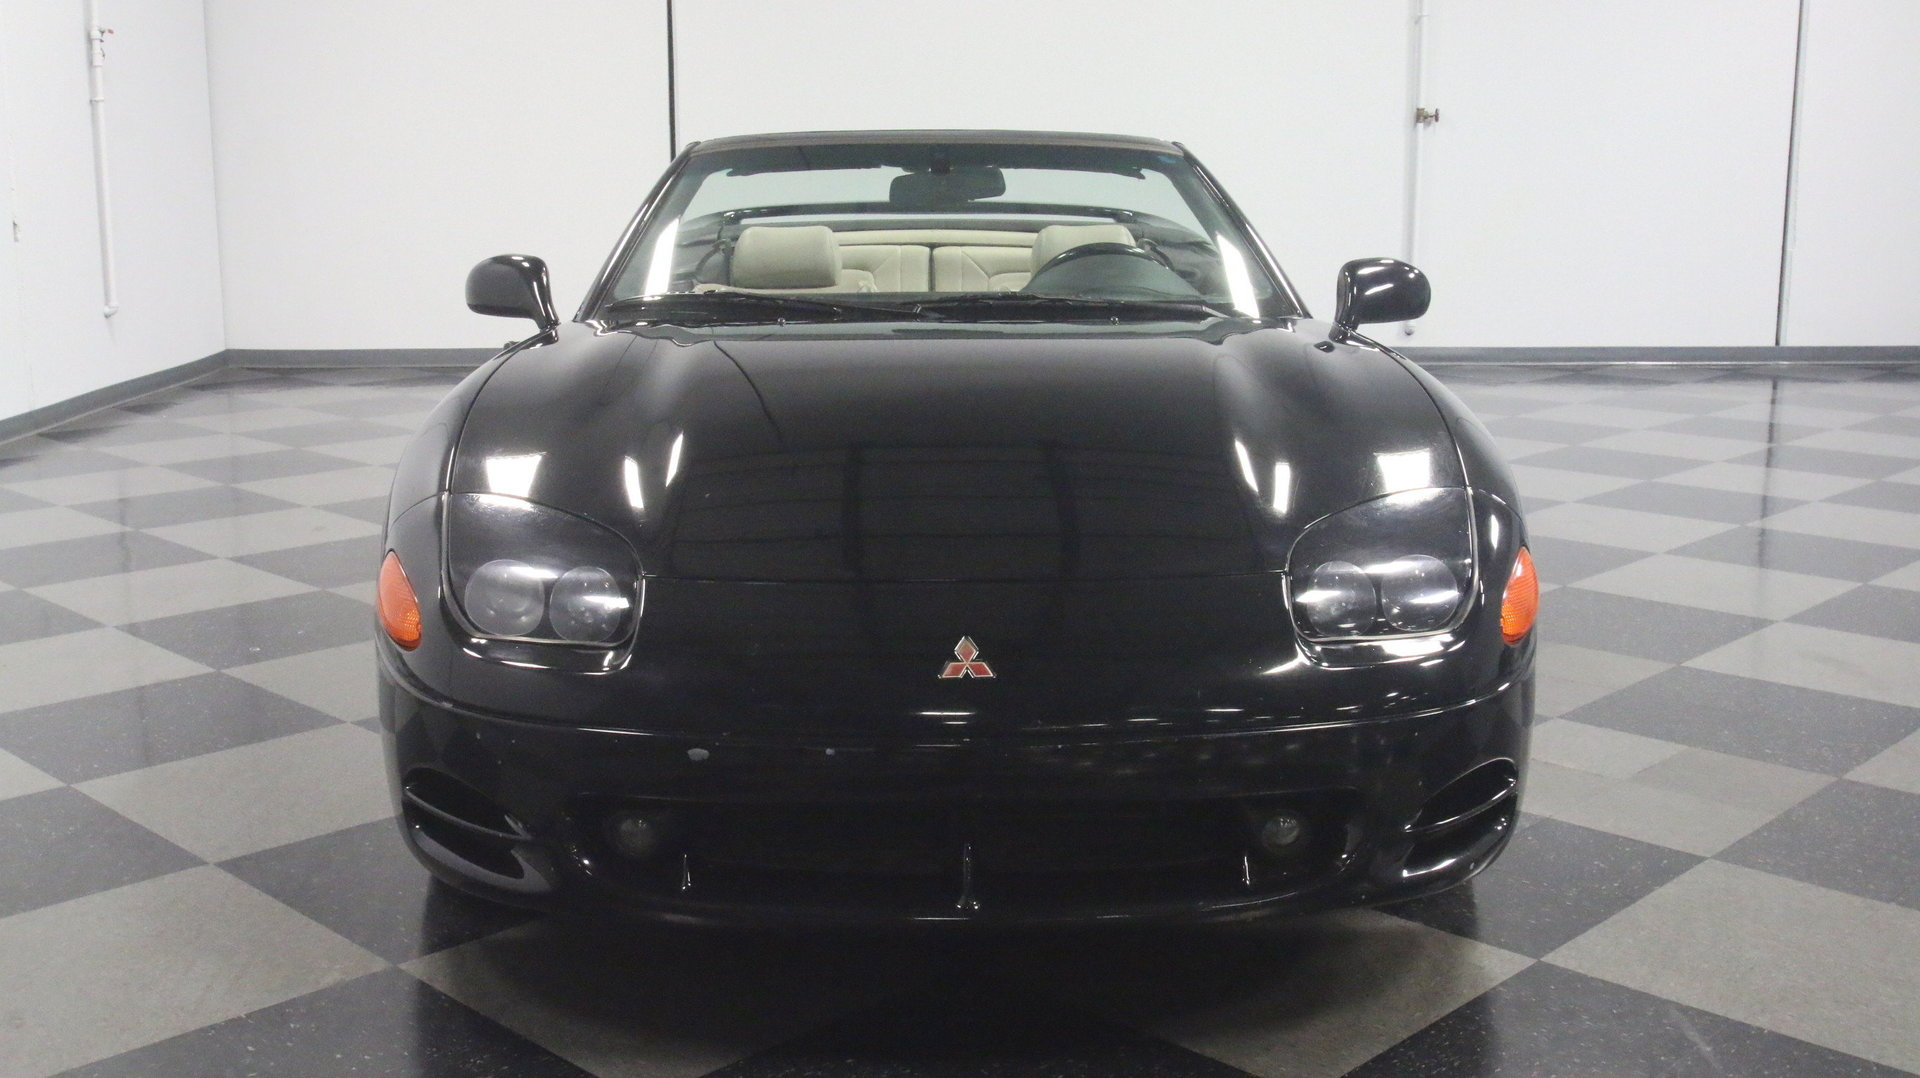 1995 Mitsubishi 3000gt Streetside Classics The Nations Trusted 1991 Tachometer Wiring Diagram View 360